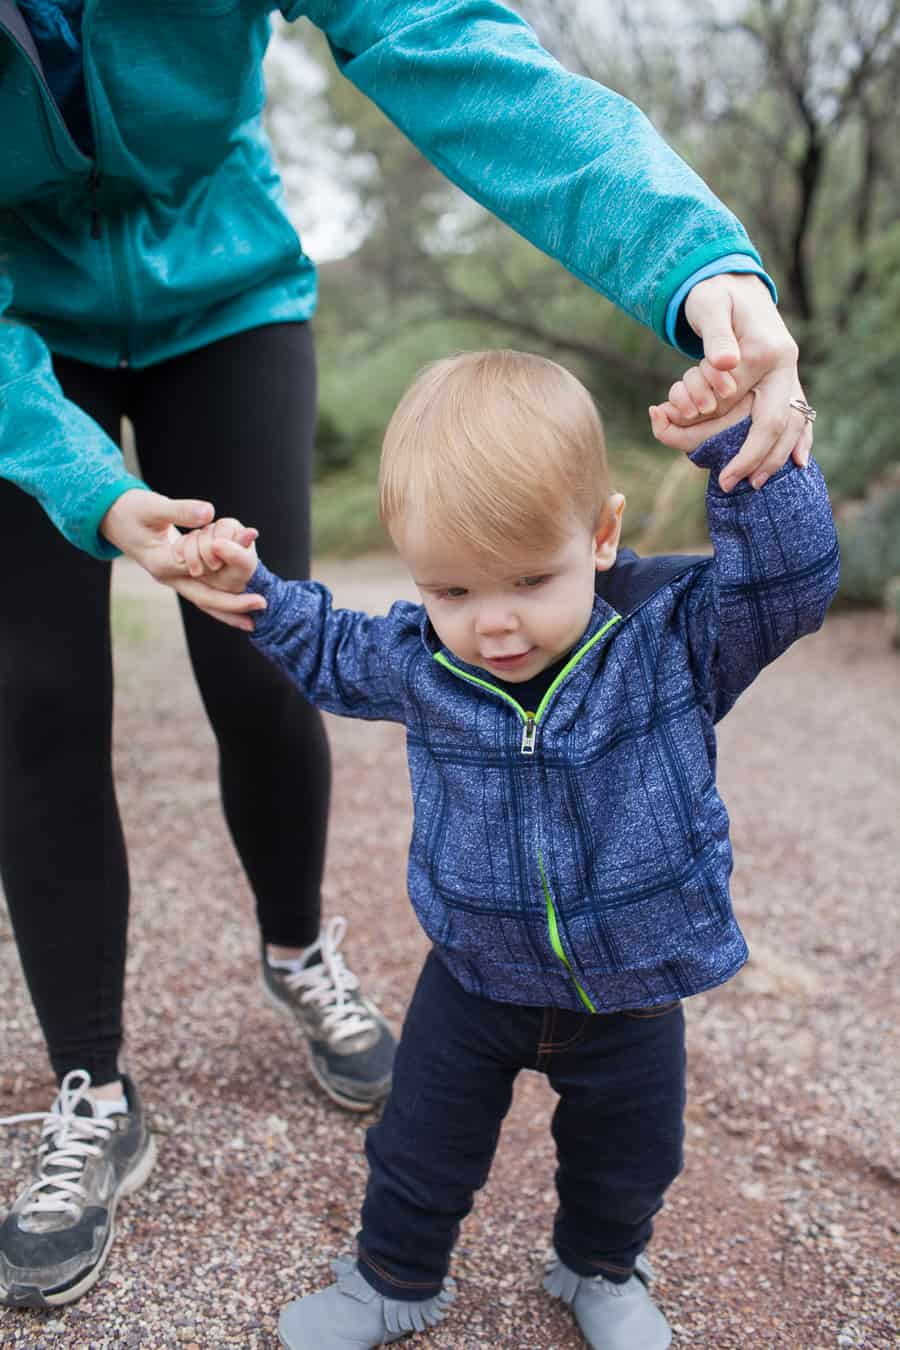 If you love being outside and exploring, you may be hesitant to bring your young infants or toddlers along for the adventure. Below are some tips to help hiking with a toddler or little one be a stress free experience.